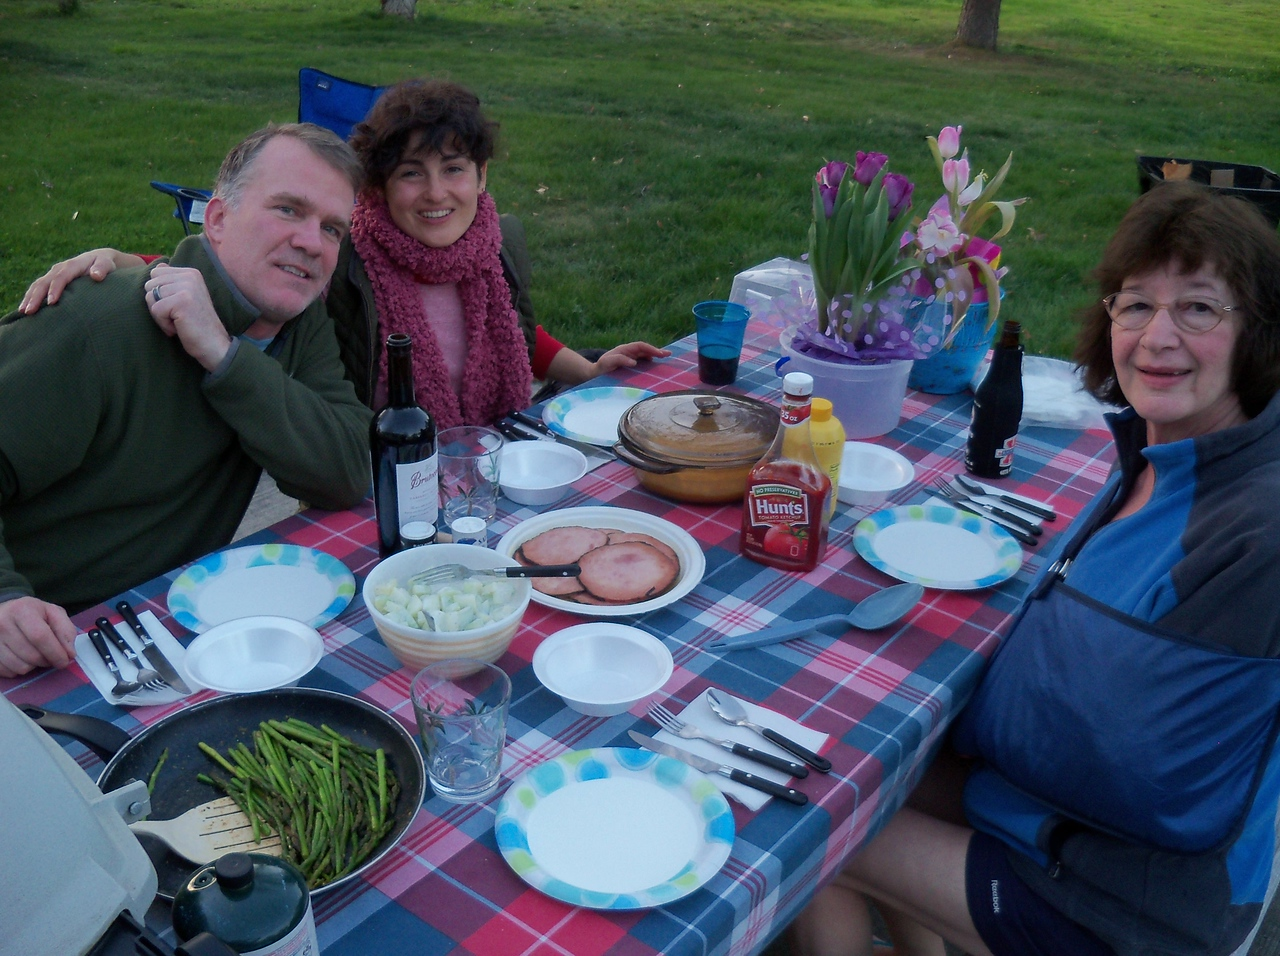 Easter Dinner in the park. glazed ham, au gratin potatoes, garlic butter asparugs, cucumber salad and chocolate easter eggs!